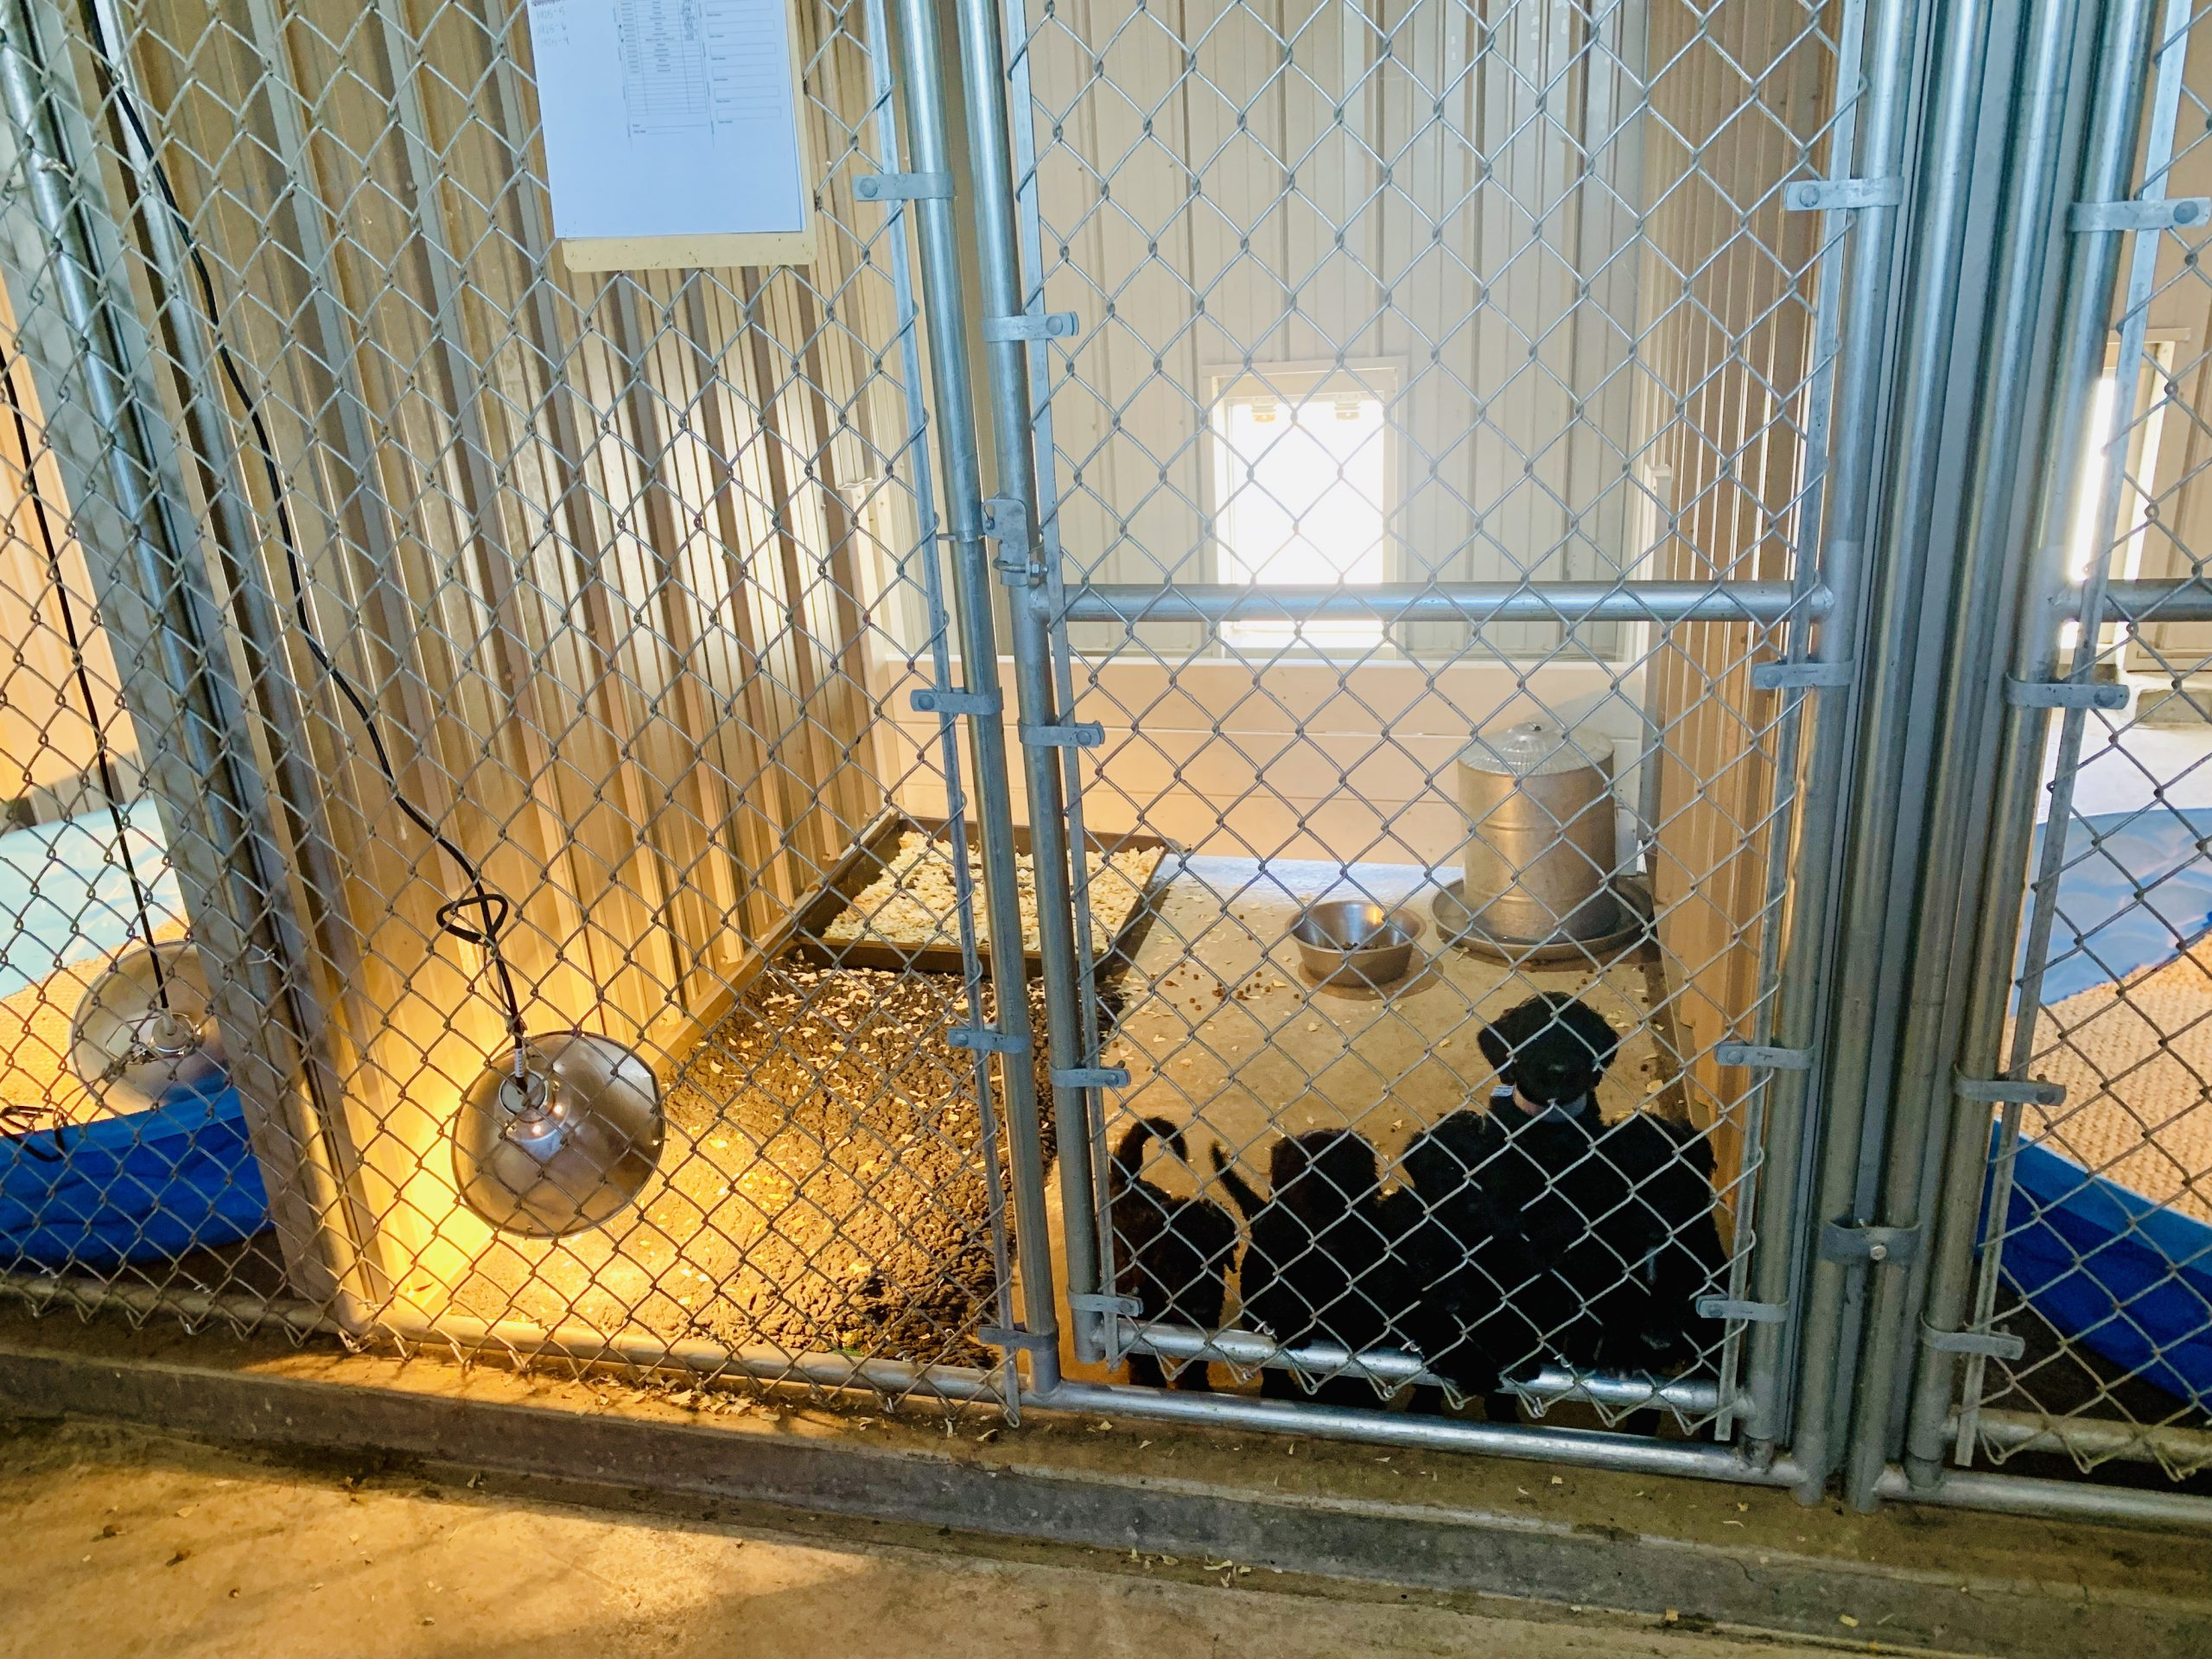 An interior view of Megan's kennel